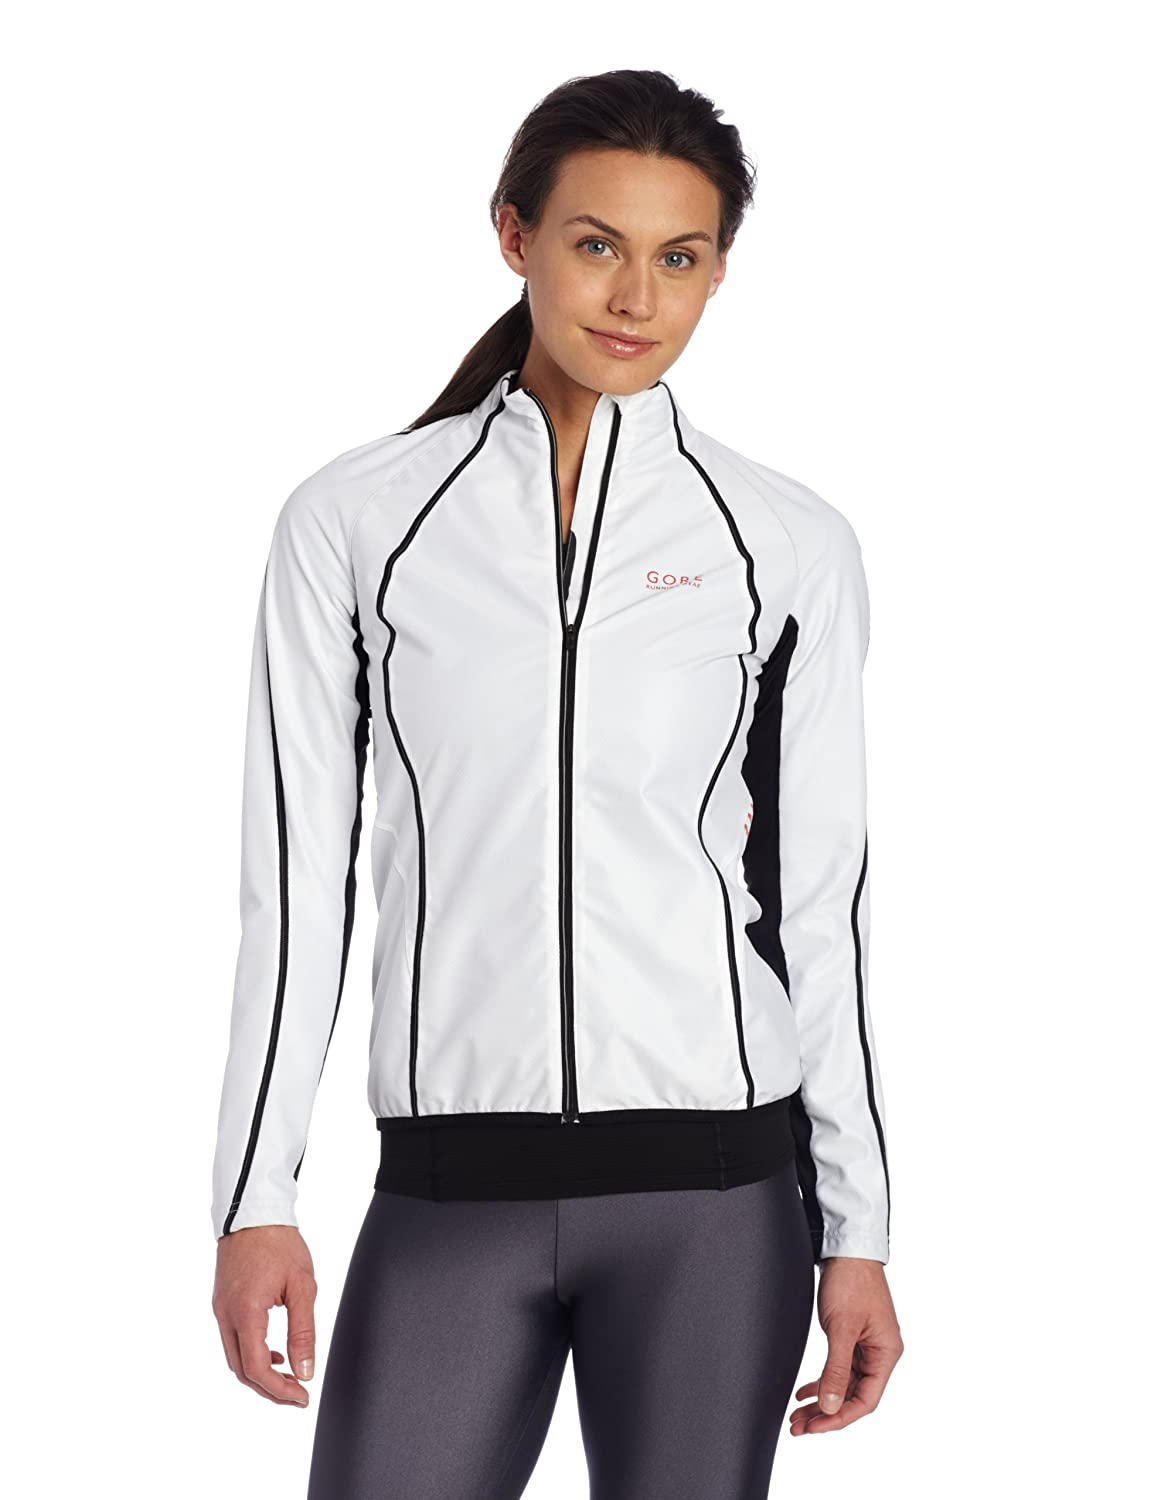 GORE RUNNING WEAR Damen winddichte Laufjacke, 2-Lagen WINDSTOPPER Active Shell, Magnitude AS, JWMAGL online kaufen